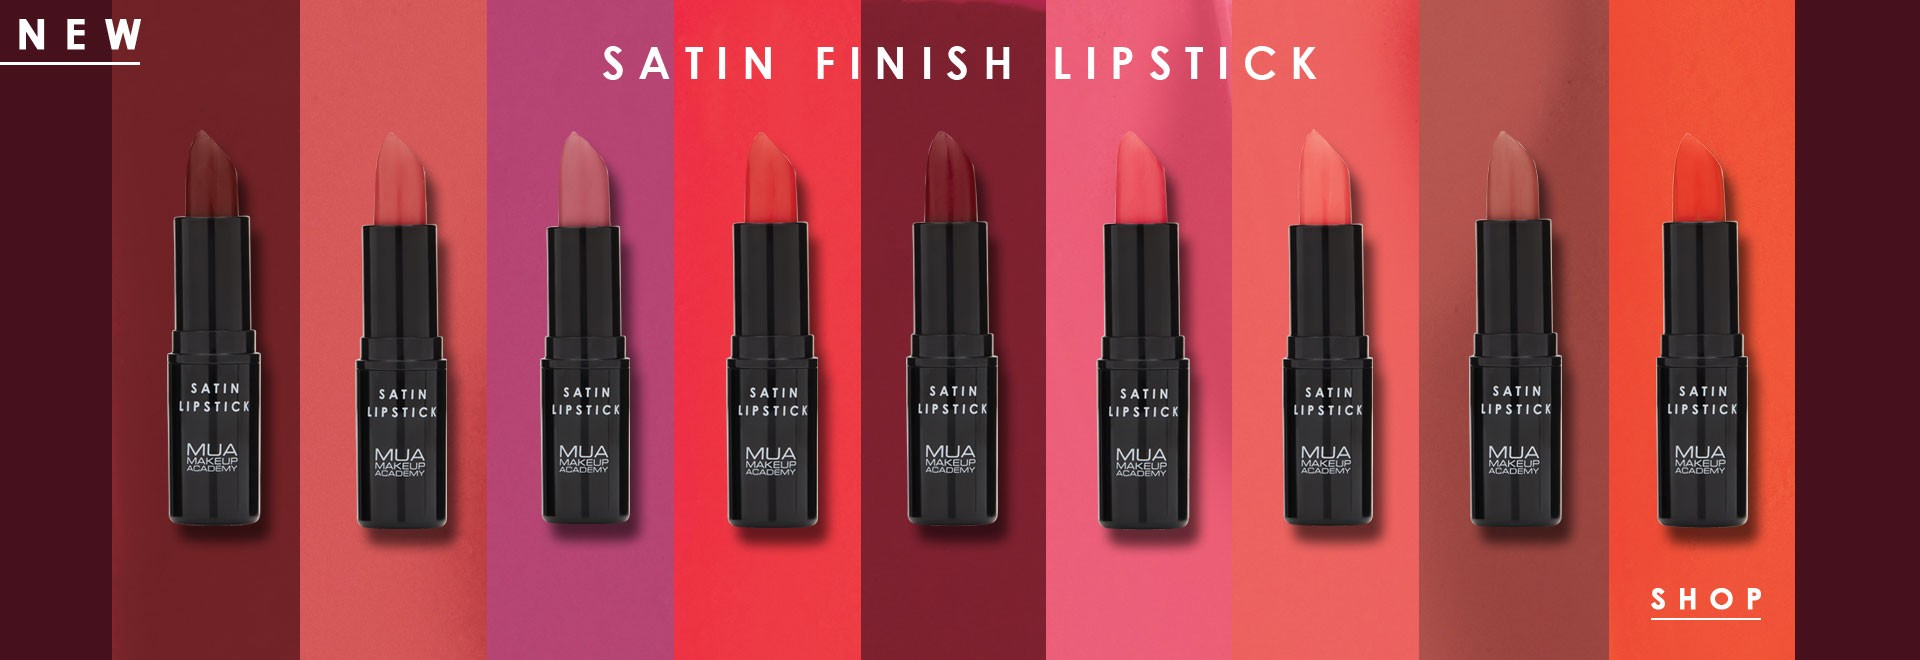 MUA SATIN FINISH LIPSTICK